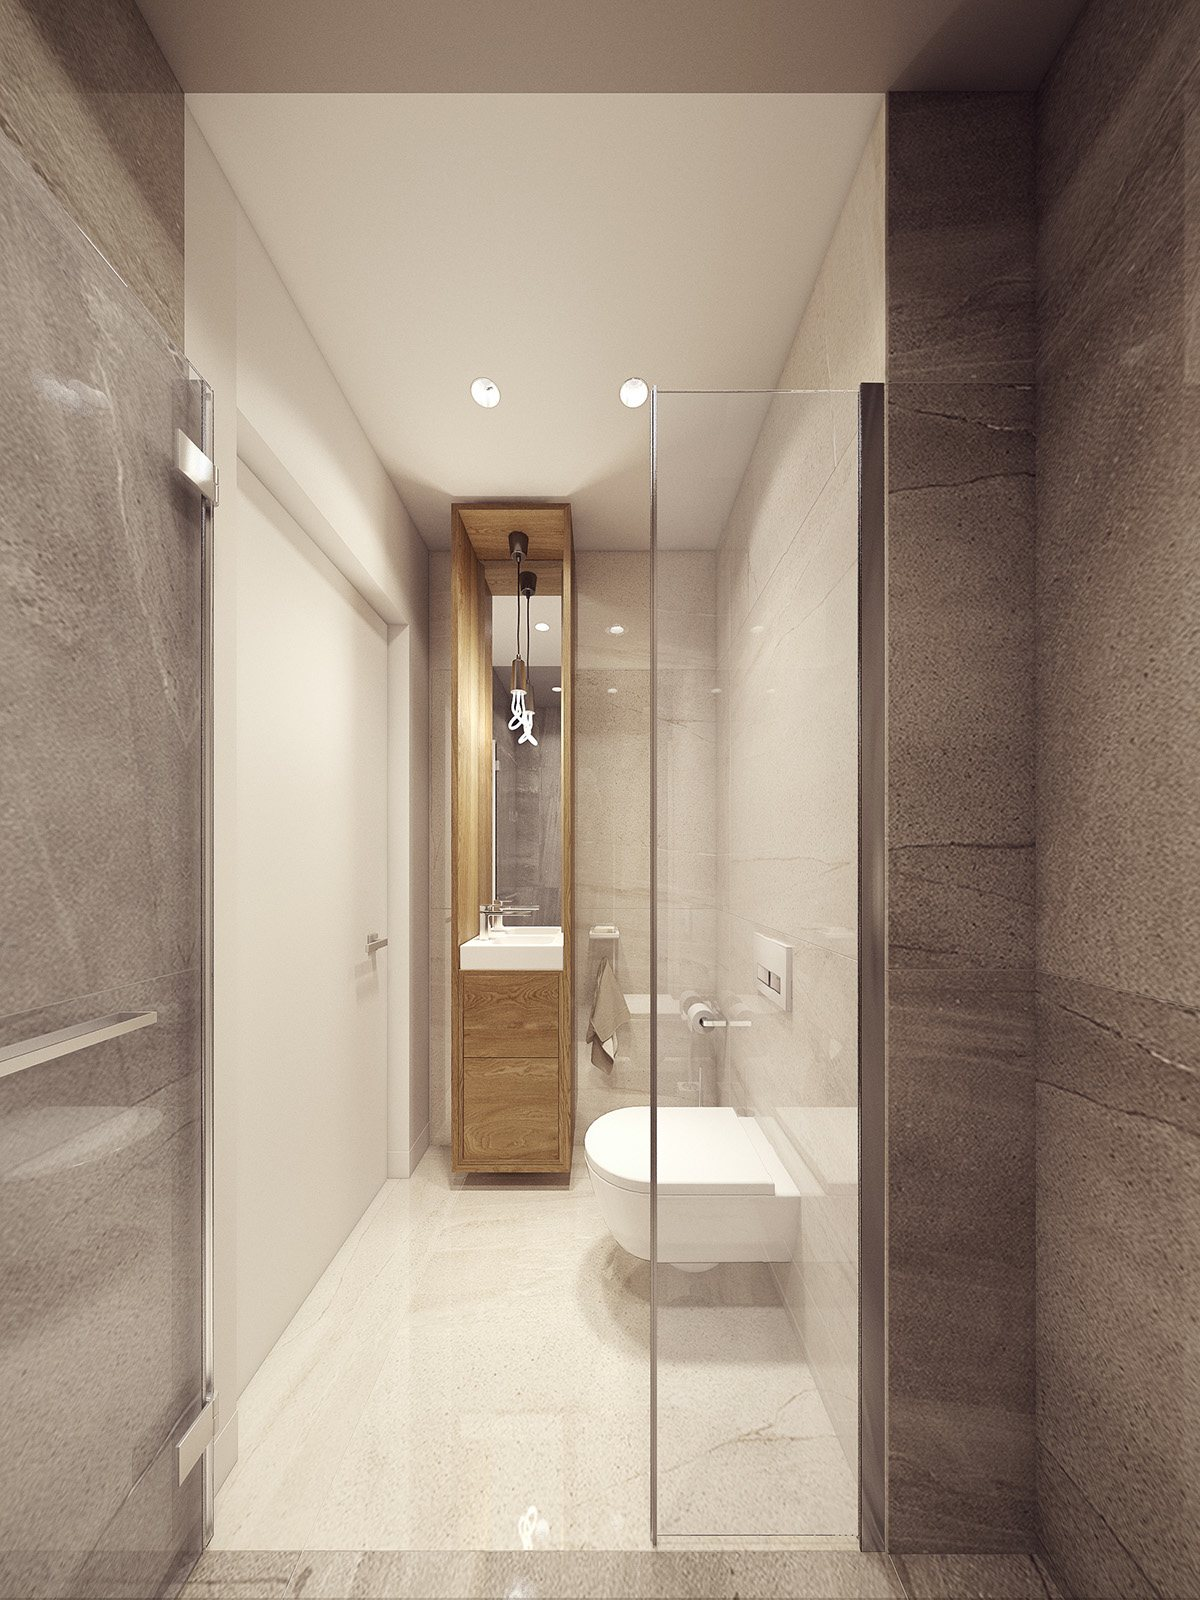 Narrow Bathroom Vanity For Small Space - Dramatic interior architecture meets elegant decor in krakow